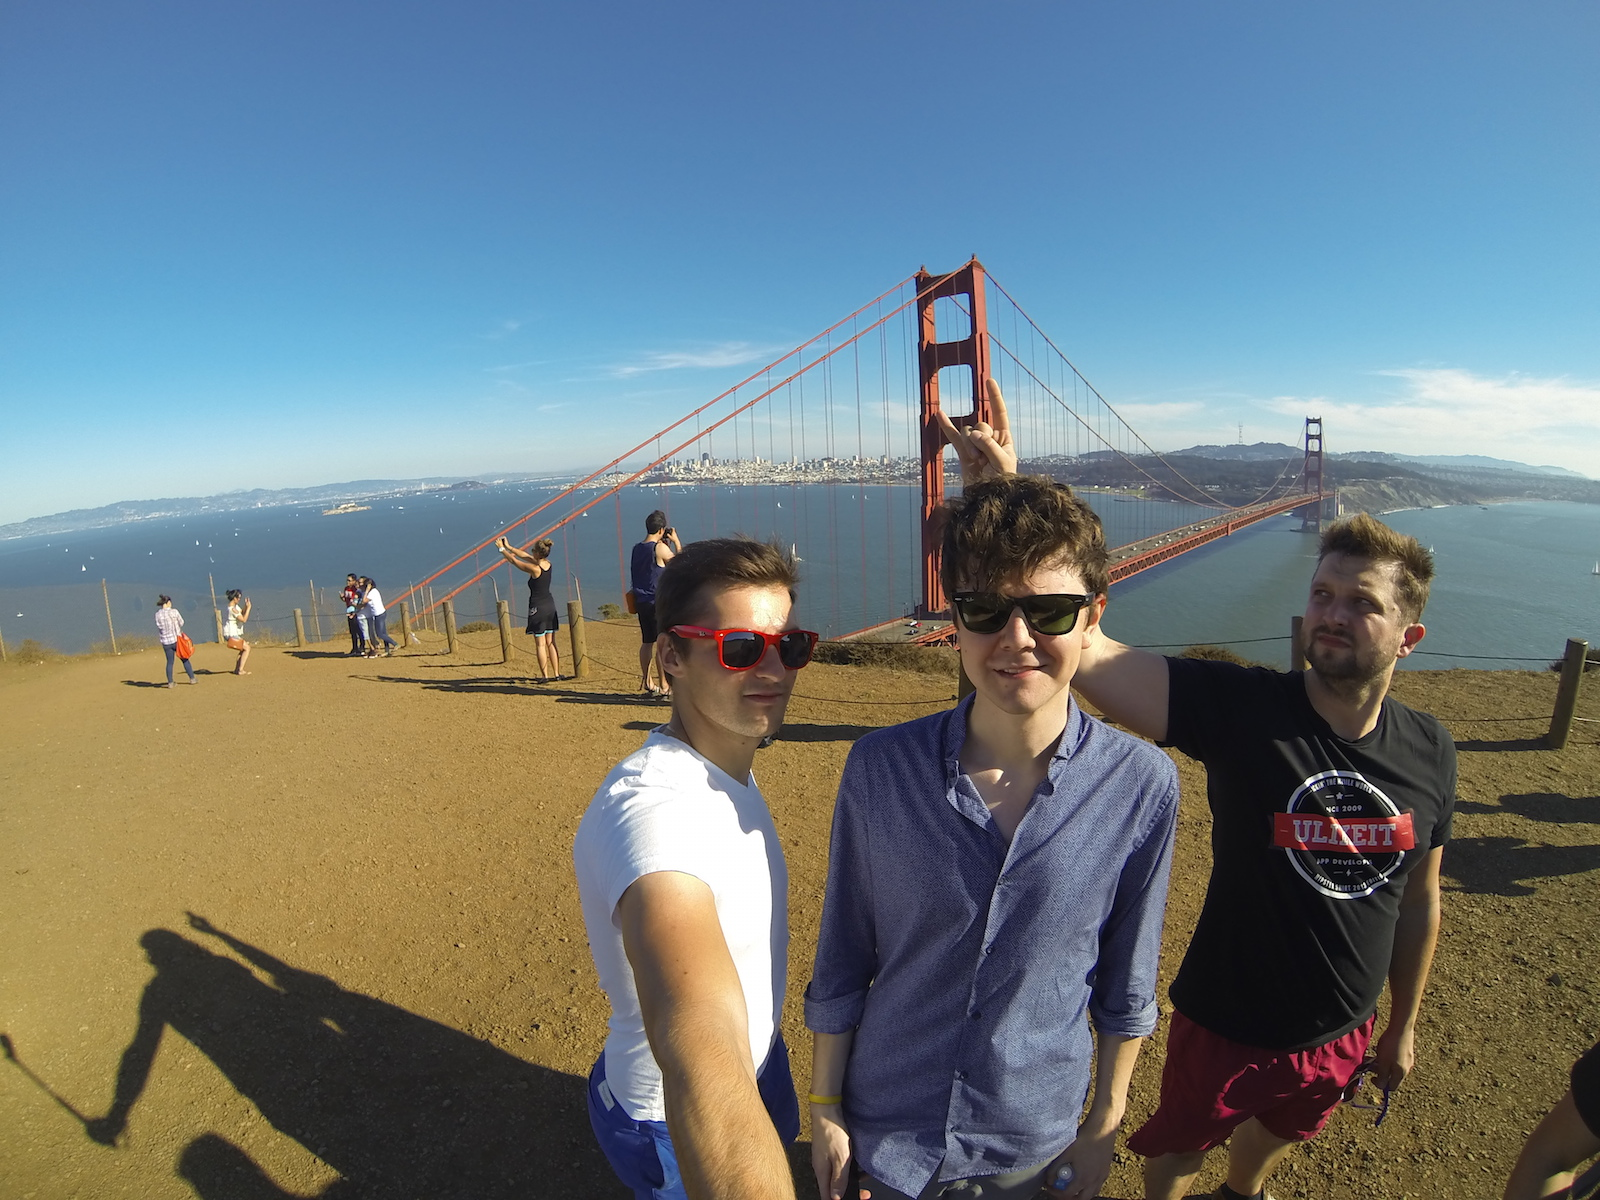 Lubo Smid, Daniel Kraus, Vojta Stavik at Golden Gate